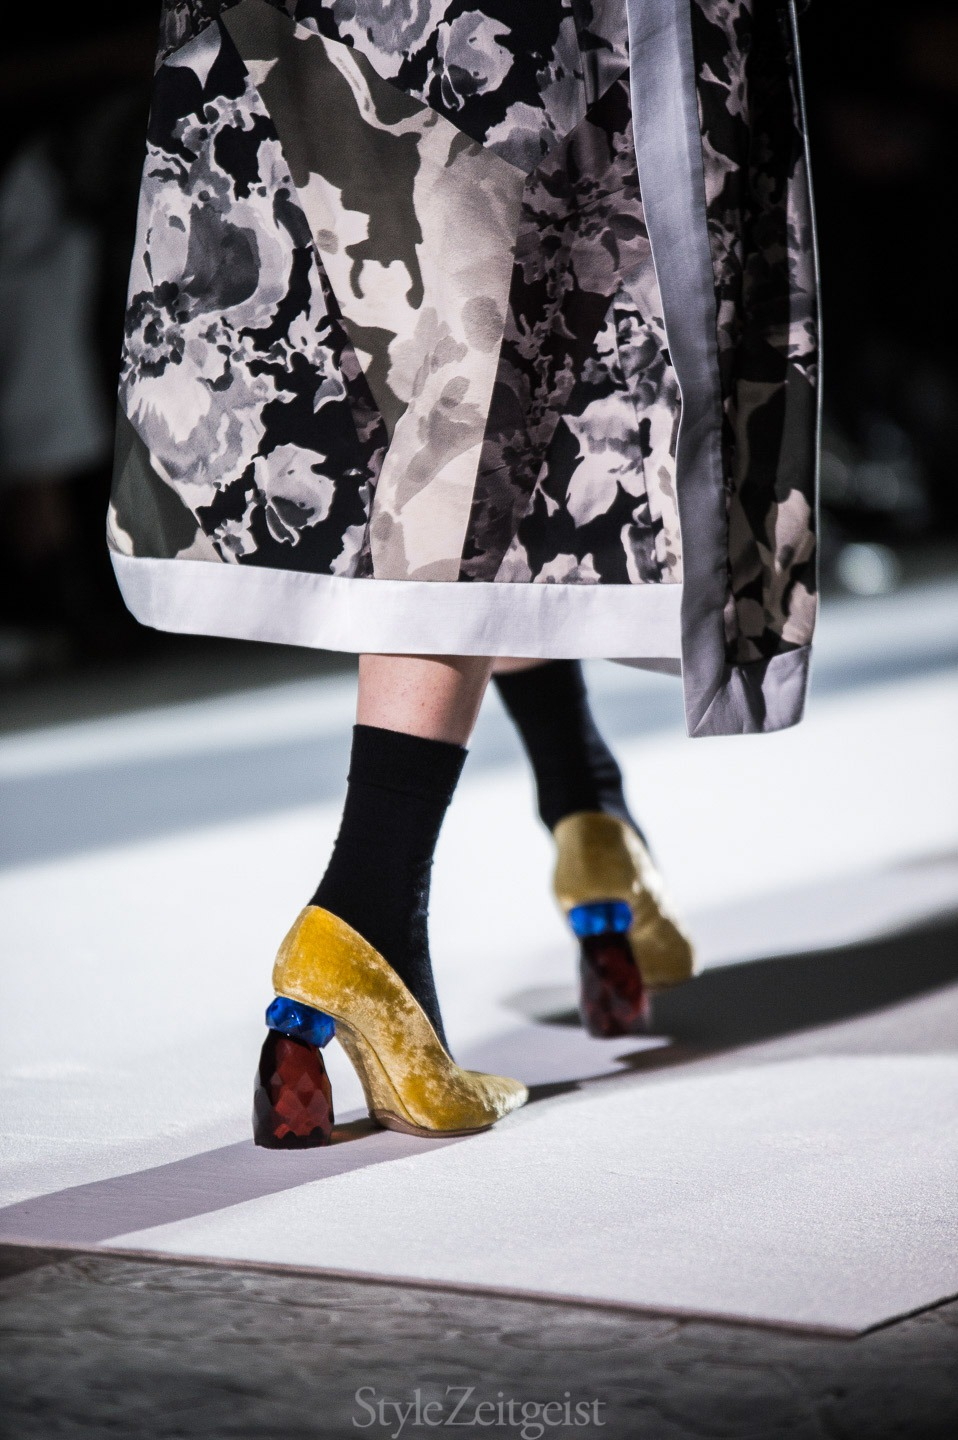 StyleZeitgeist Dries Van Noten F/W17 Women's - Paris Fashion    StyleZeitgeist Dries Van Noten F/W17 Women's - Paris Fashion    StyleZeitgeist Dries Van Noten F/W17 Women's - Paris Fashion    StyleZeitgeist Dries Van Noten F/W17 Women's - Paris Fashion    StyleZeitgeist Dries Van Noten F/W17 Women's - Paris Fashion    StyleZeitgeist Dries Van Noten F/W17 Women's - Paris Fashion    StyleZeitgeist Dries Van Noten F/W17 Women's - Paris Fashion    StyleZeitgeist Dries Van Noten F/W17 Women's - Paris Fashion    StyleZeitgeist Dries Van Noten F/W17 Women's - Paris Fashion    StyleZeitgeist Dries Van Noten F/W17 Women's - Paris Fashion